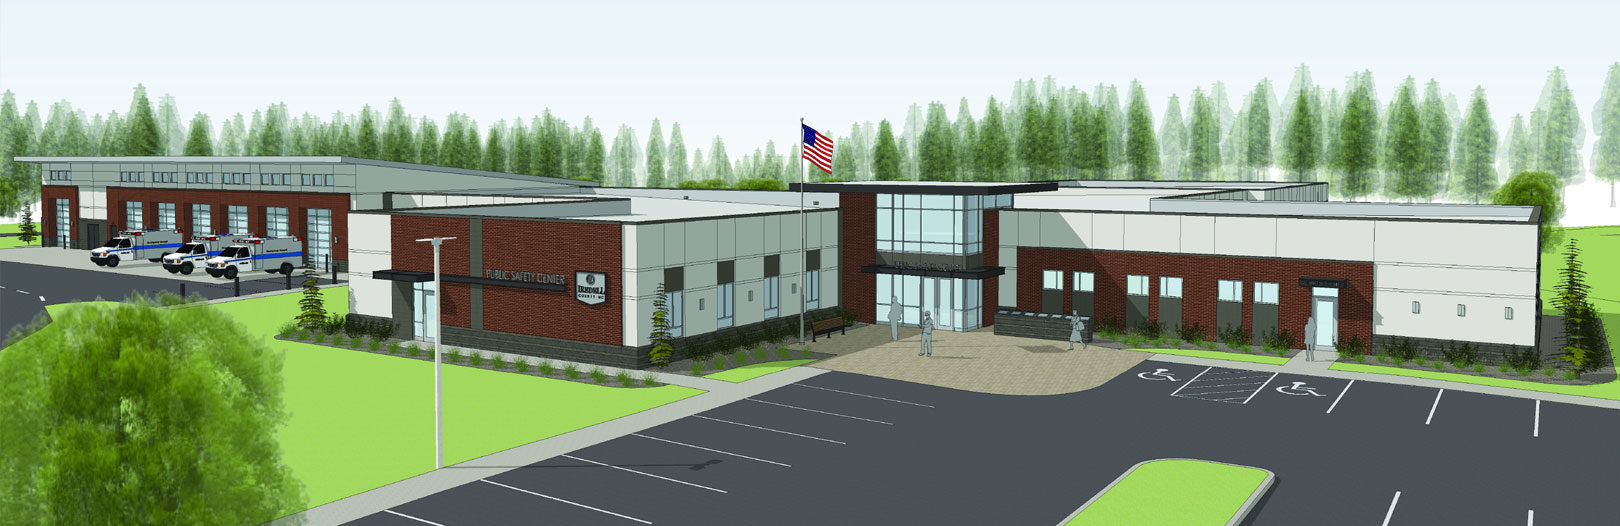 Iredell County's new Public Safety Complex is Underway